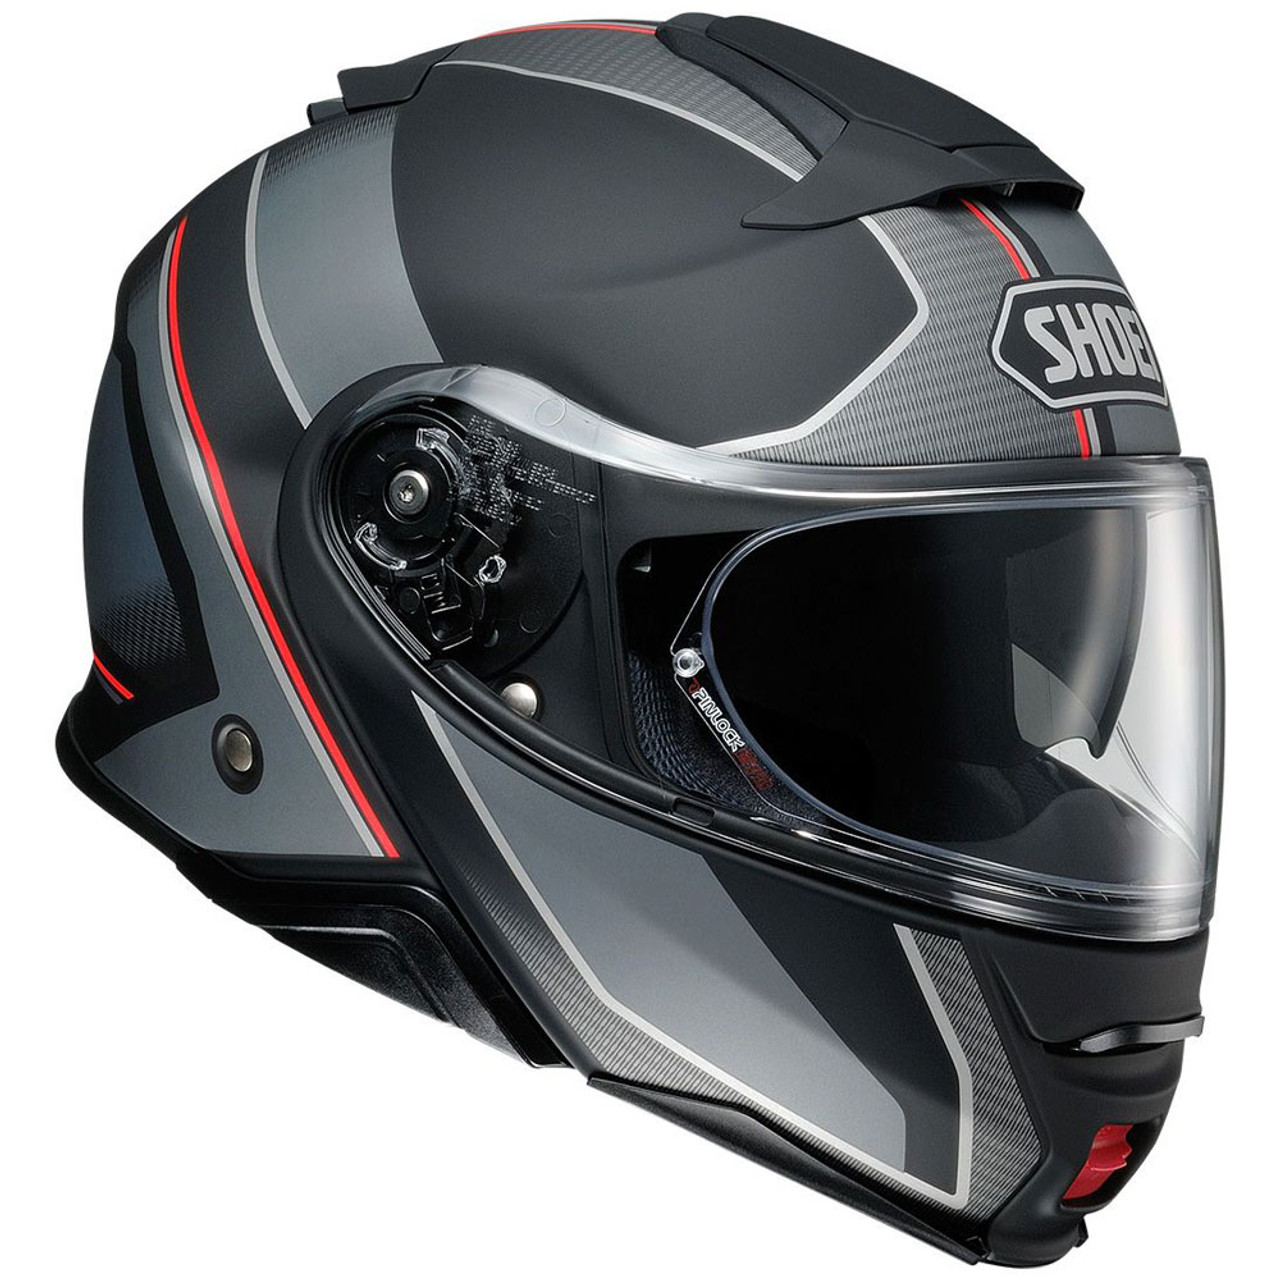 Motorcycle Riding Pants >> Shoei Neotec 2 Modular Motorcycle Helmet - Matte Excursion TC-5 - Get Lowered Cycles